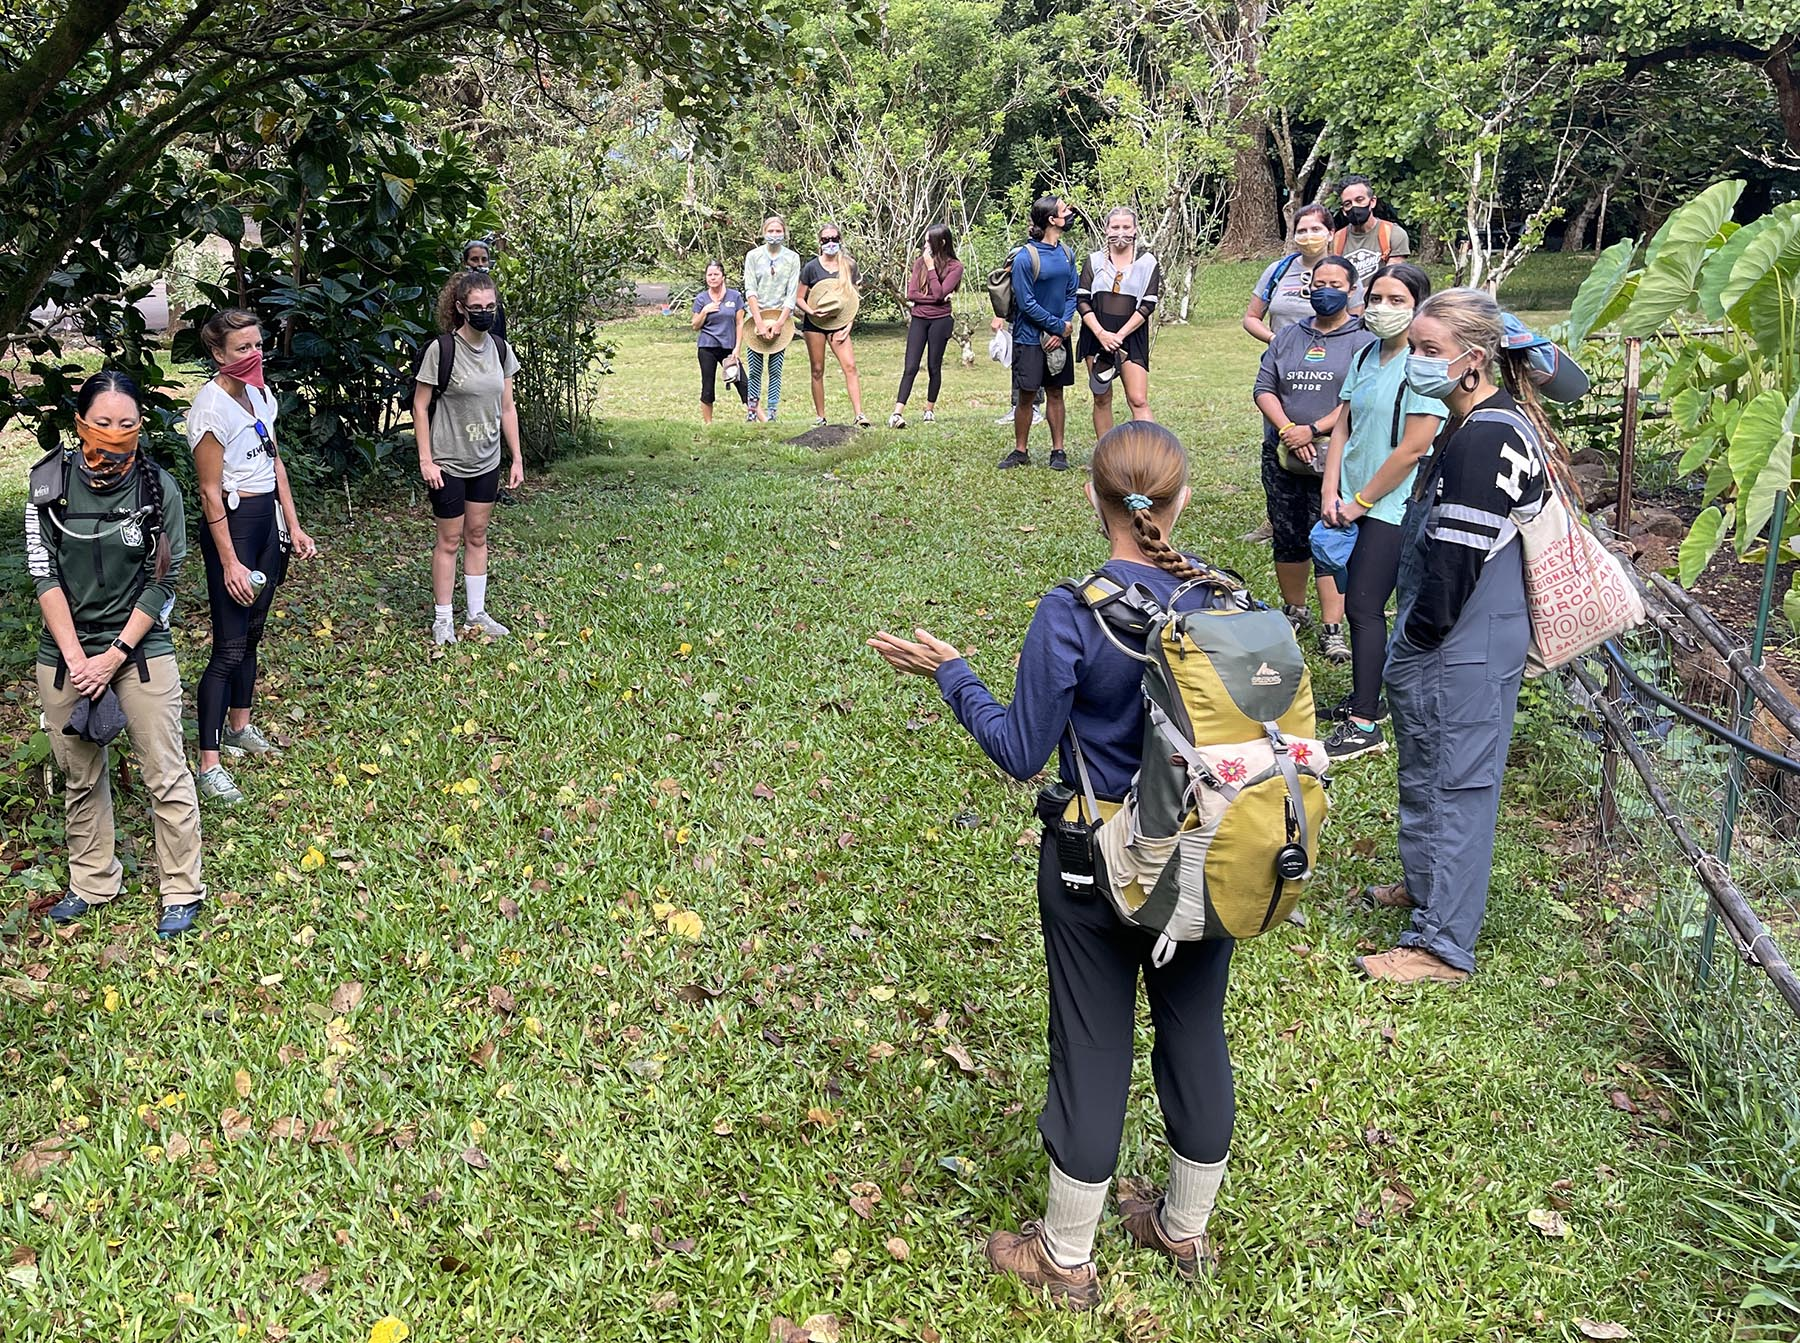 """<p>Melani Spielman, volunteer coordinator for the nonprofit Hi'ipaka, leads volunteers in a Hawaiian oli, before they begin their hike up to Kalahe'e Ridge. The purpose of the oli was equivalent to """"knocking on the door"""" to ask permission of ancestors and spirits of the valley before entering the space.</p>"""